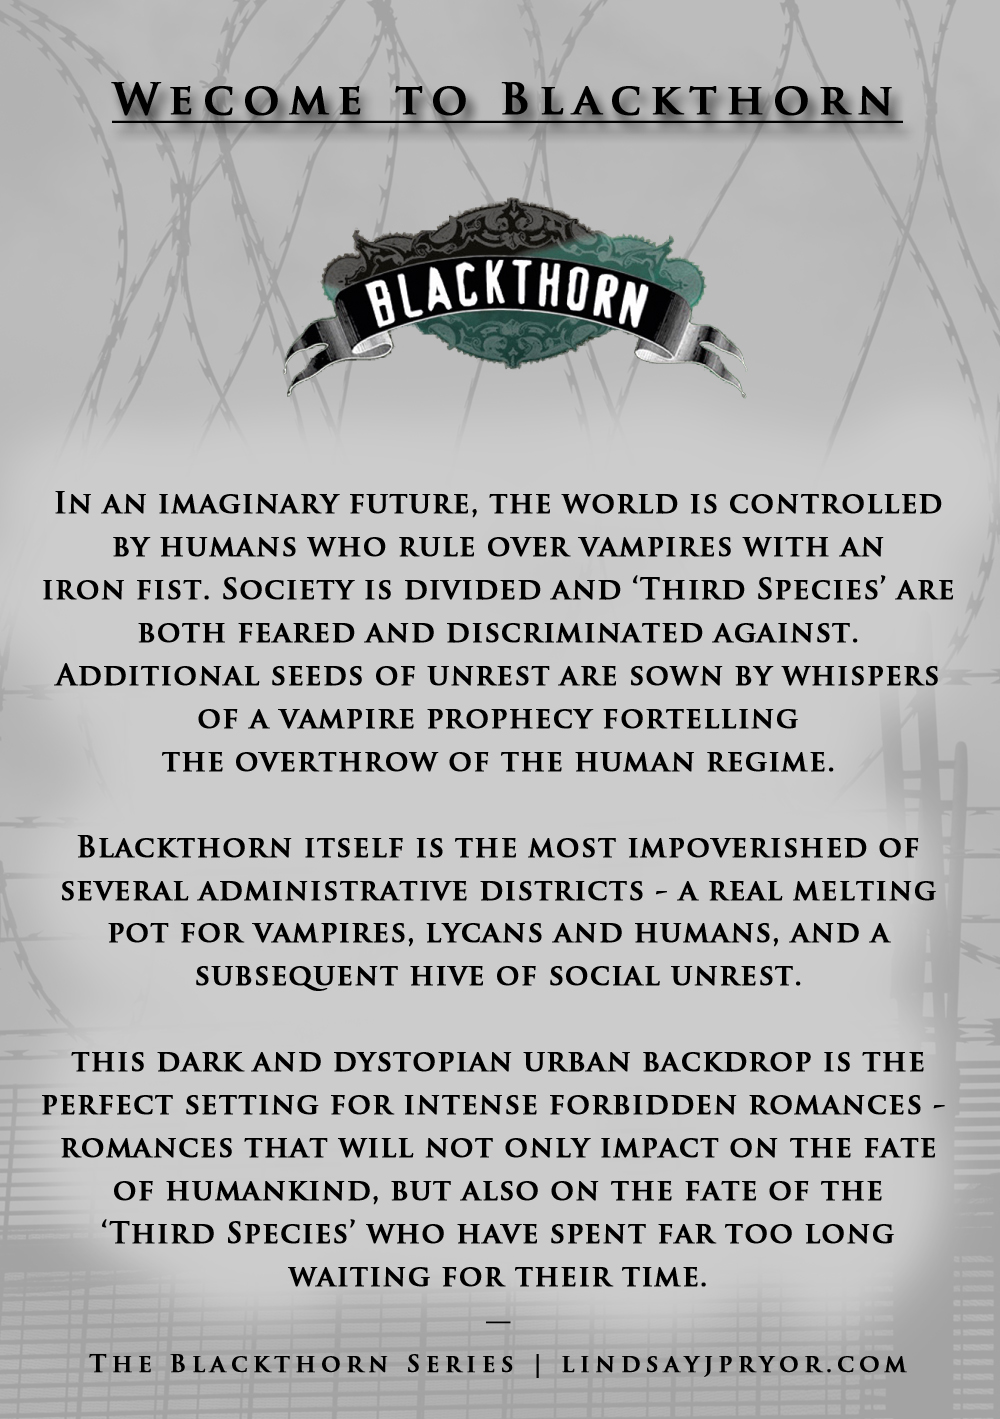 blackthorn-series-summmary